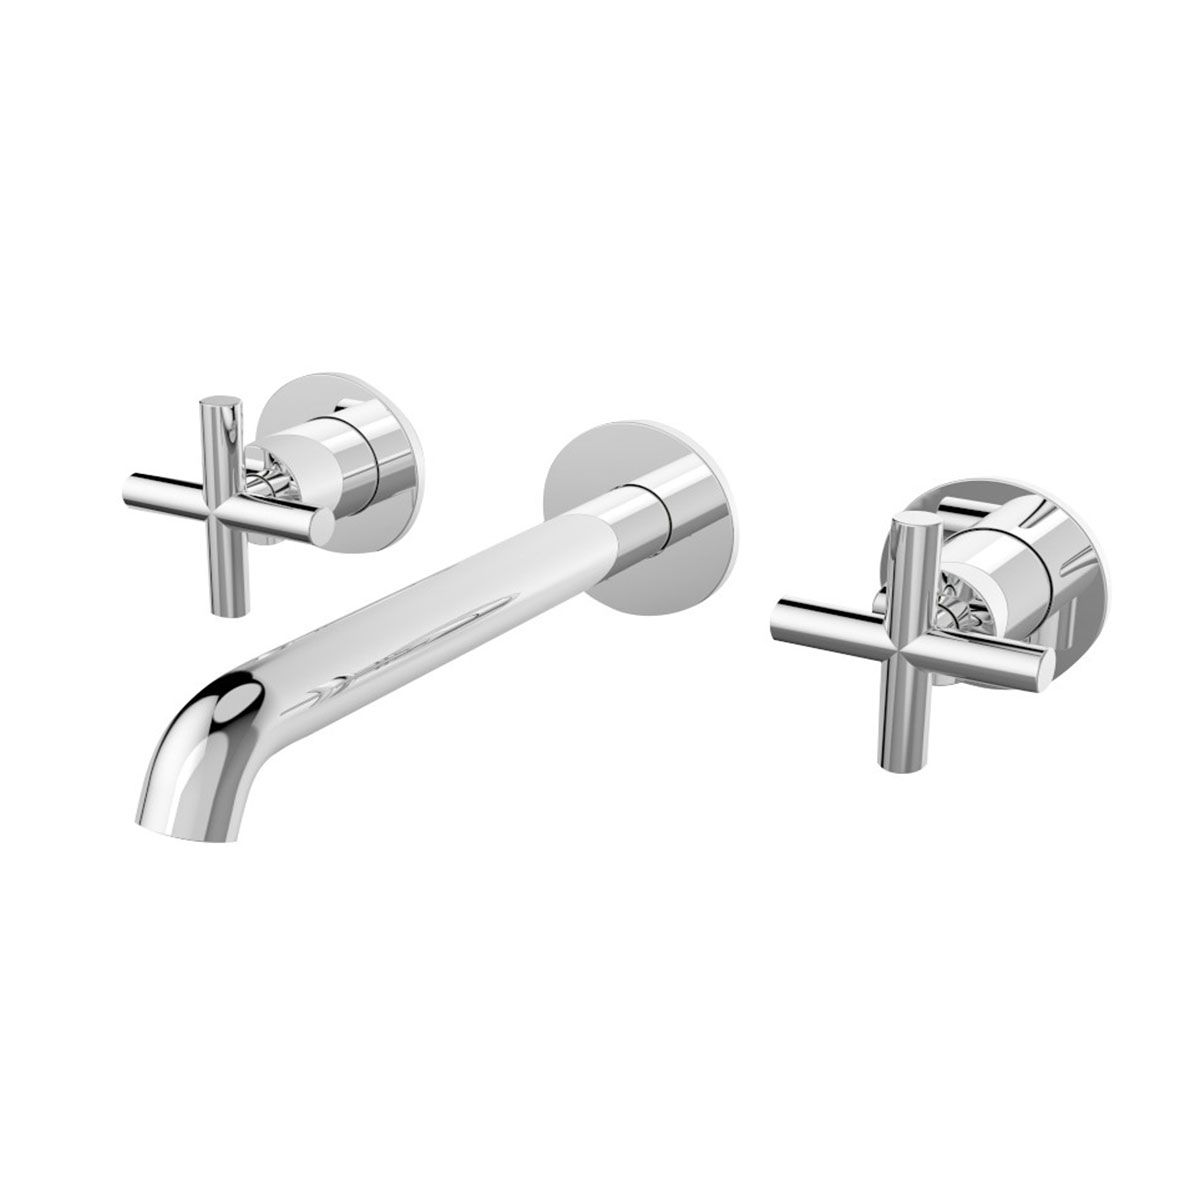 Frontline Chrome Mineral Wall Mounted 3TH Crosshead Basin Mixer